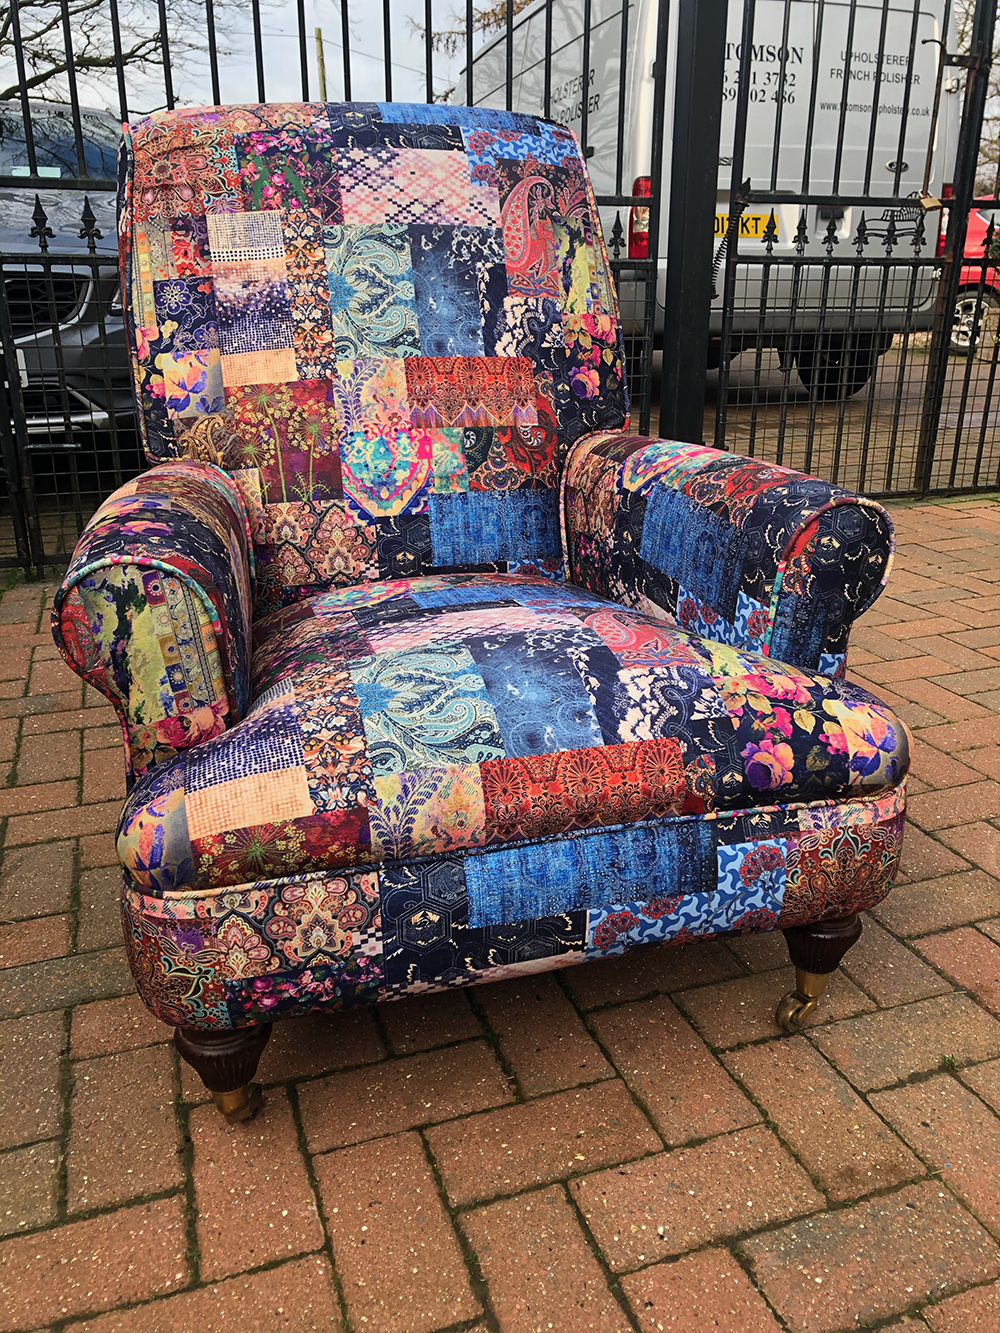 Linda Upholstered A Chair Using CTR66 Patchwork Fabric